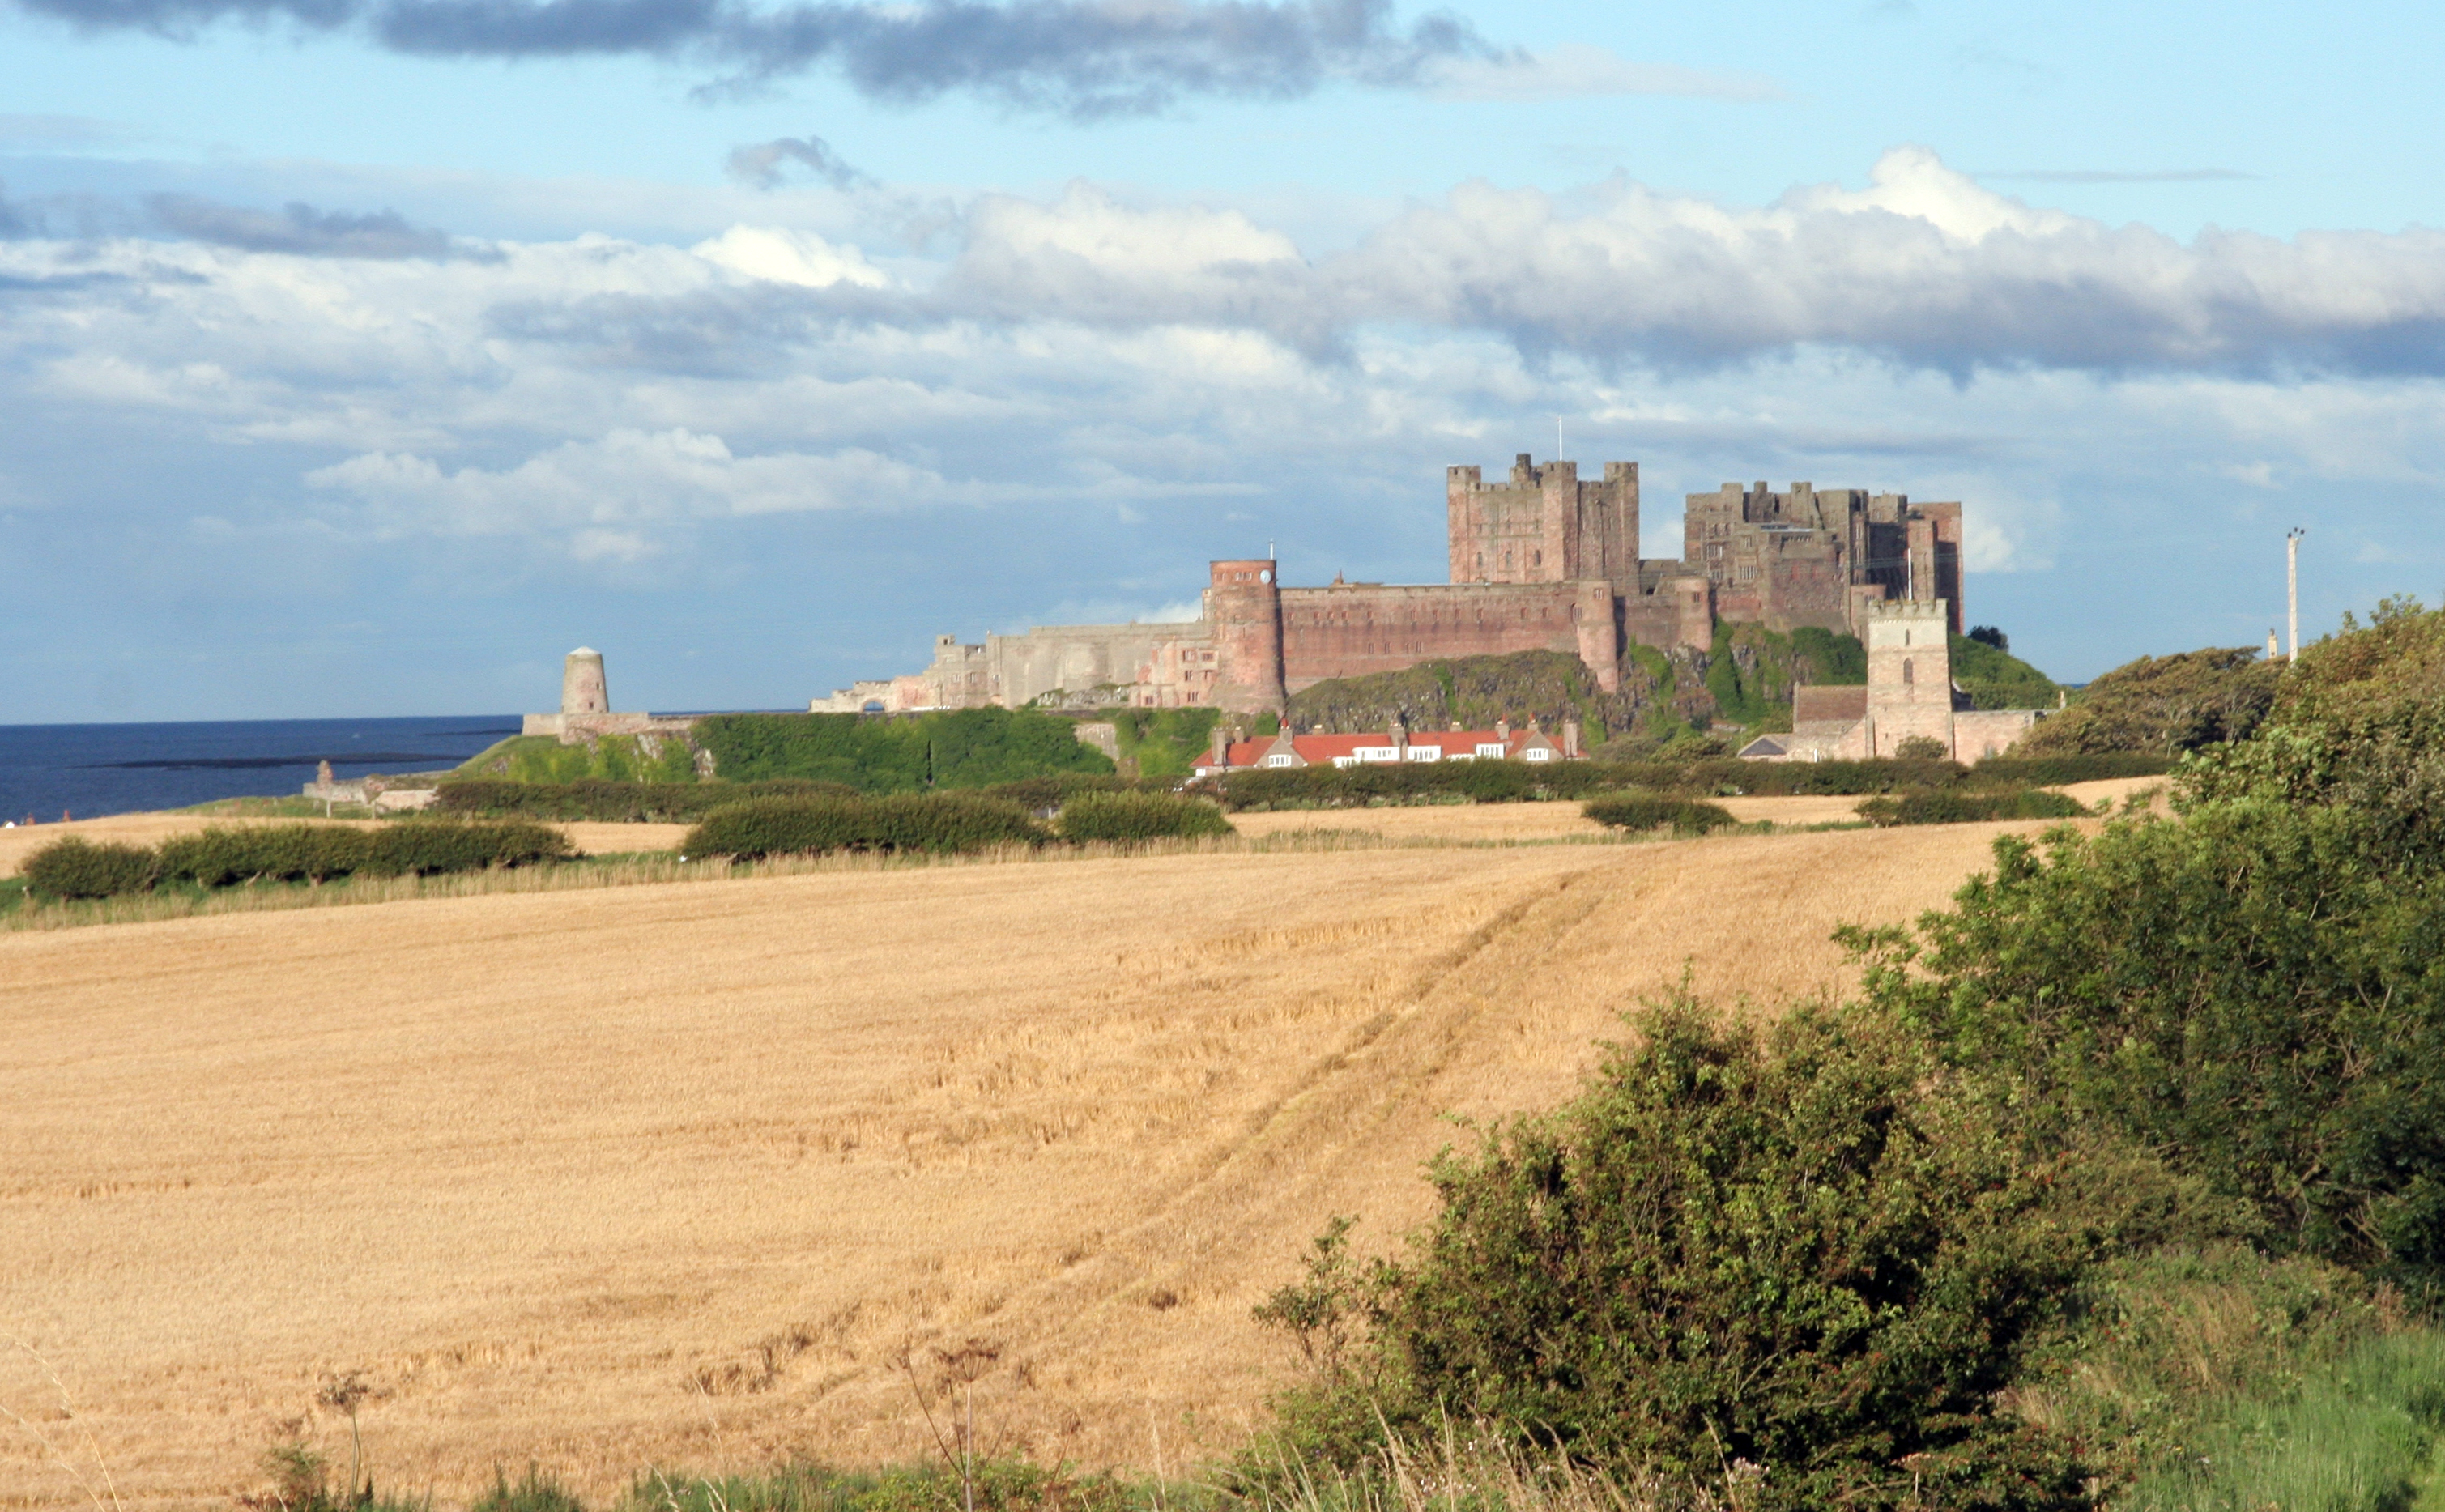 bamburgh castle - photo #29